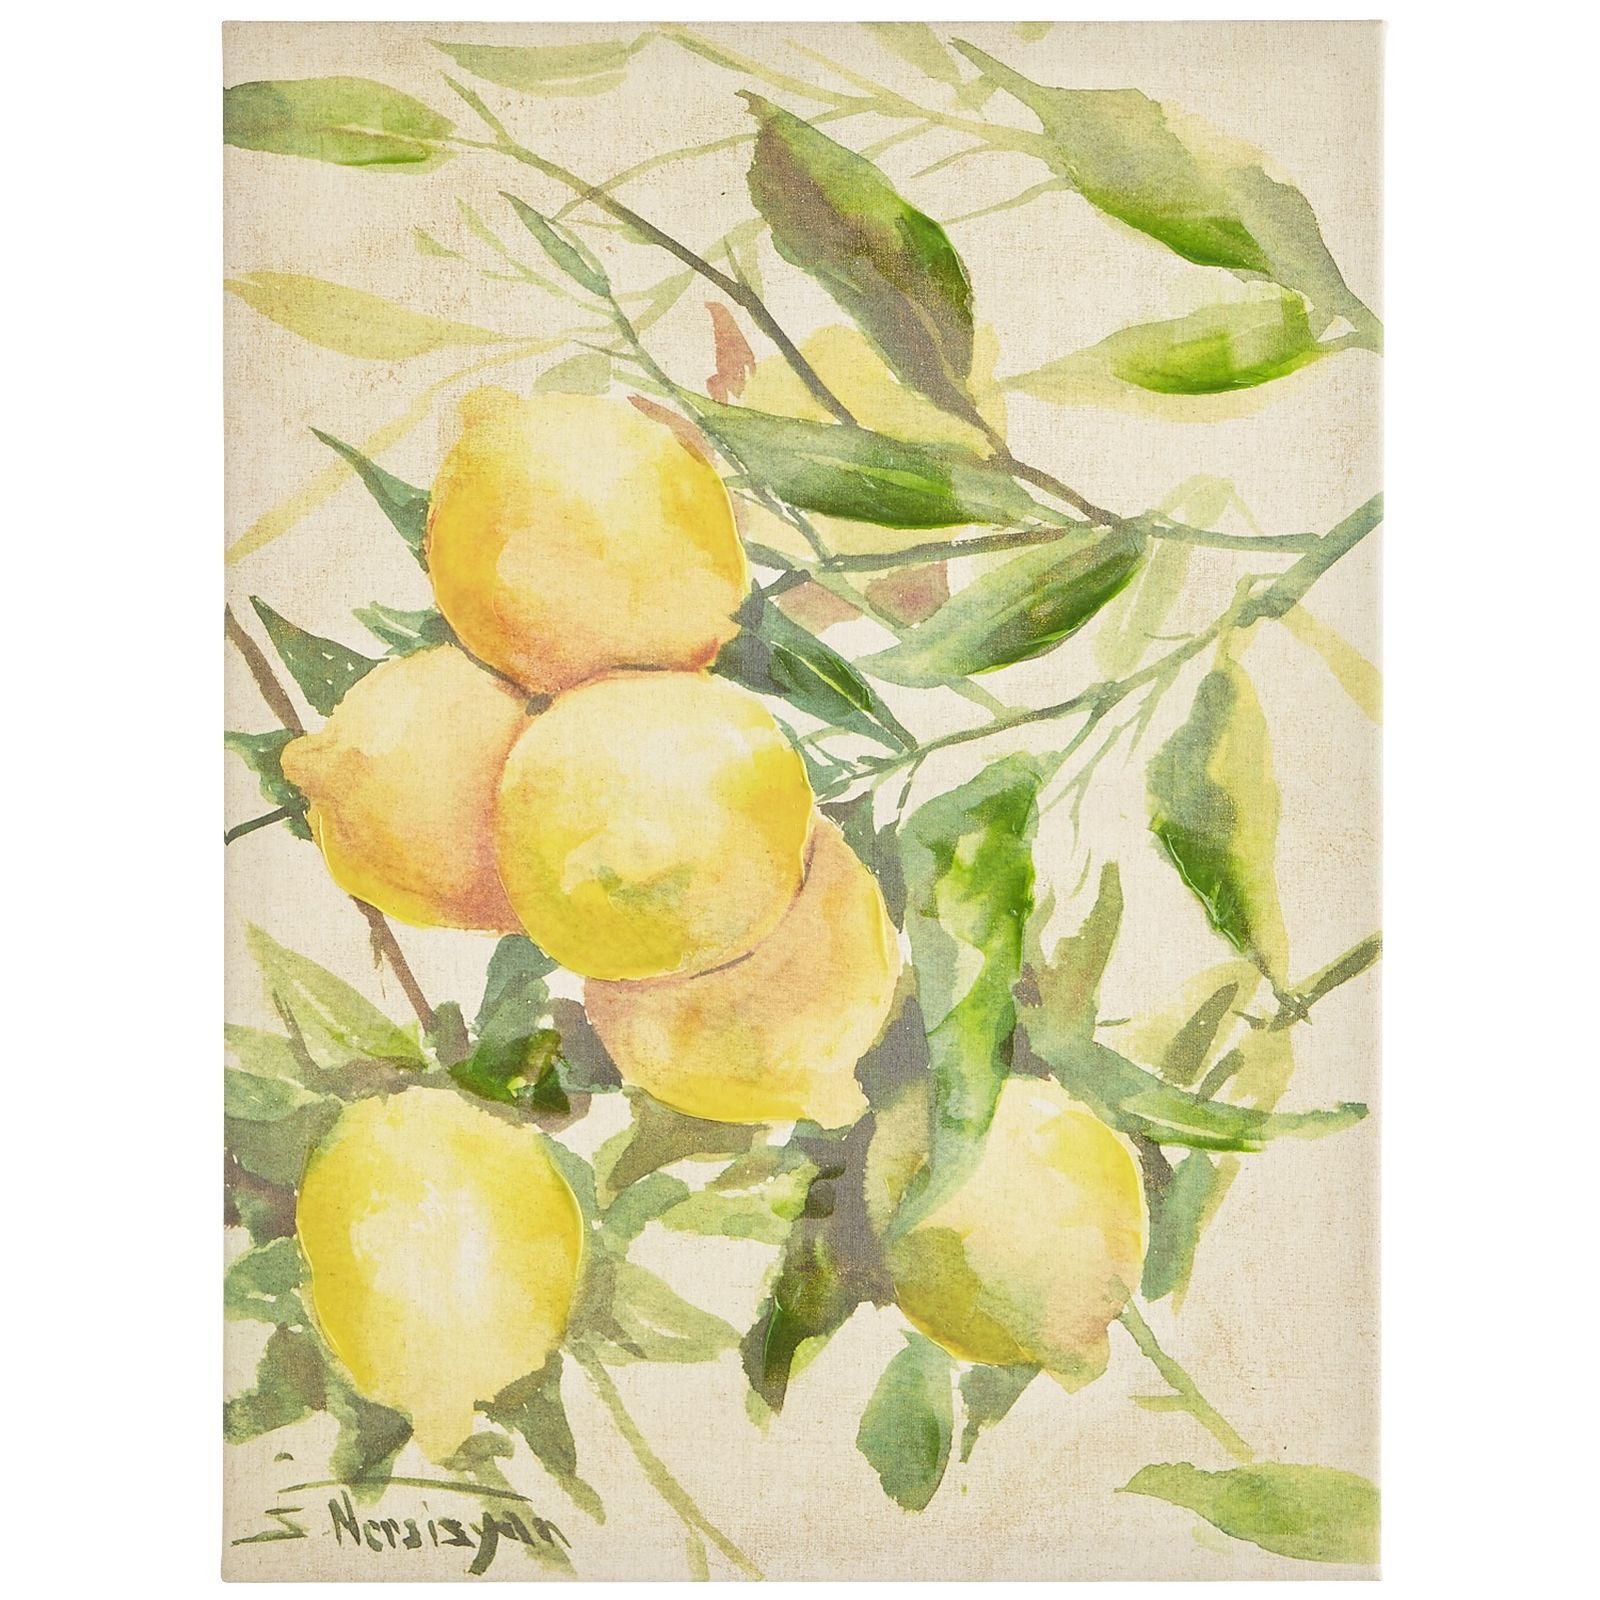 Lemons Art | Decor / Home Goods | Pinterest | Lemon art, Unique wall ...